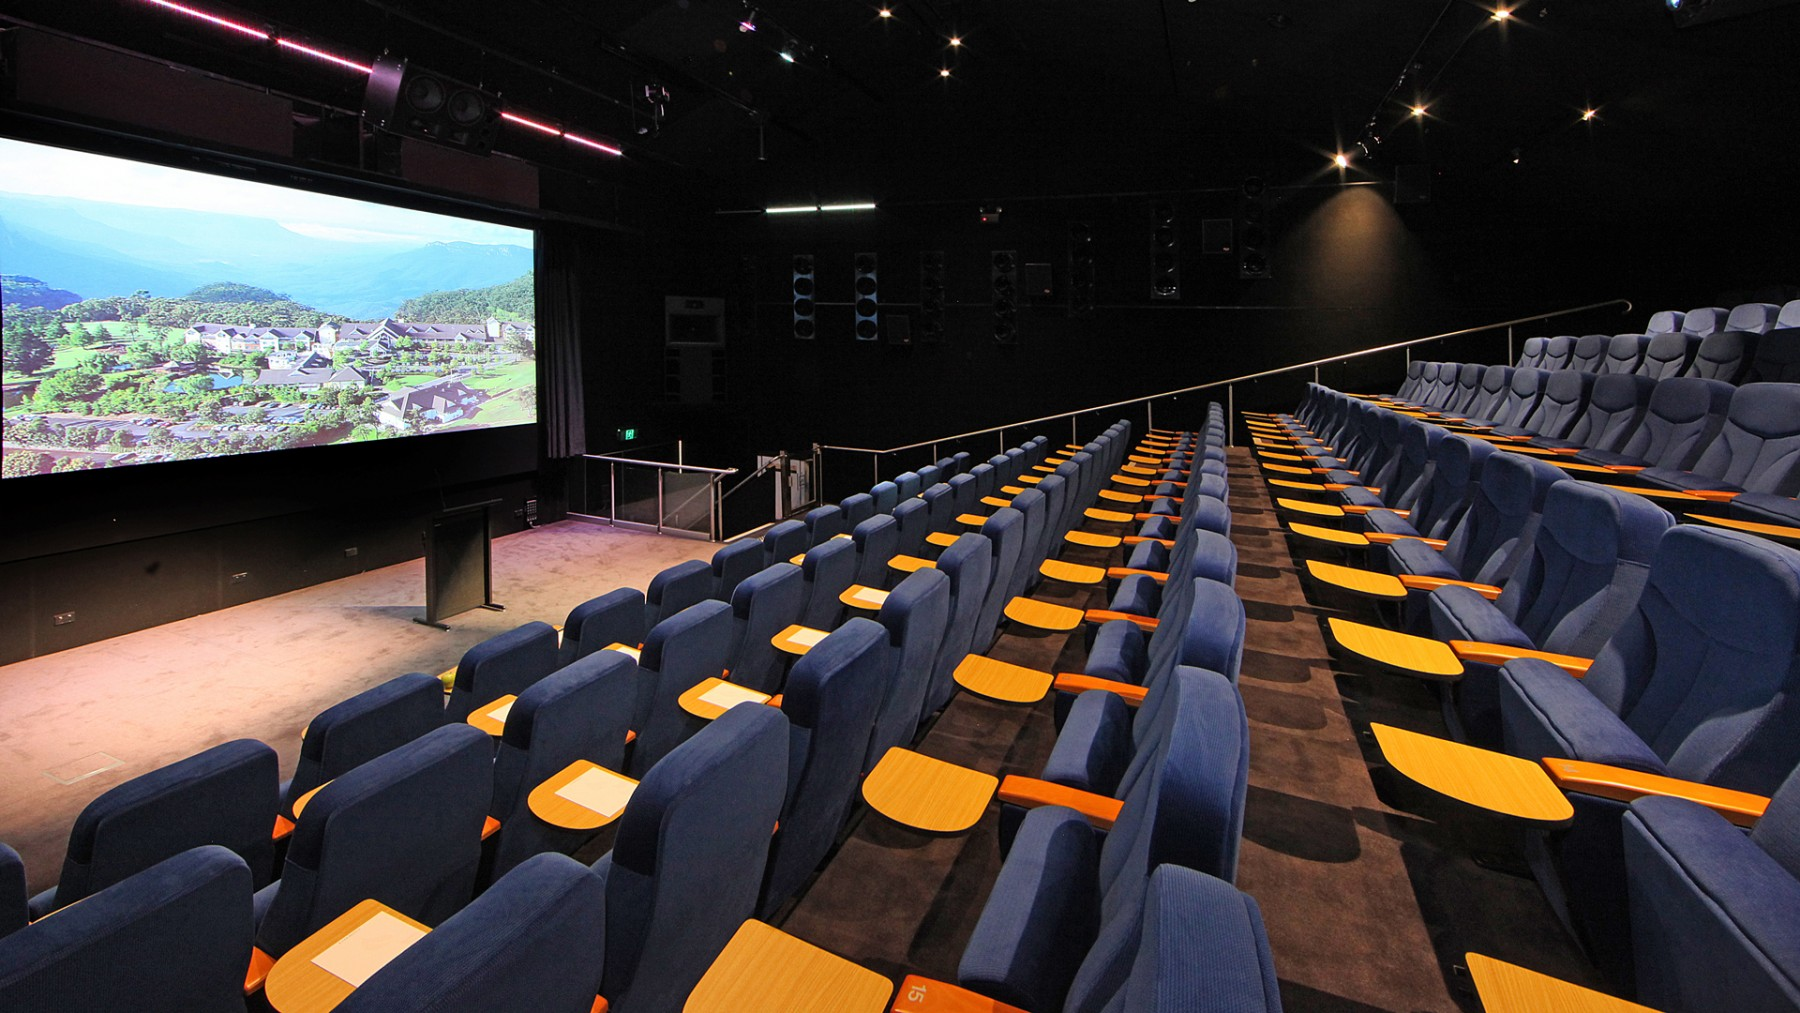 meetings-auditorium1.jpg